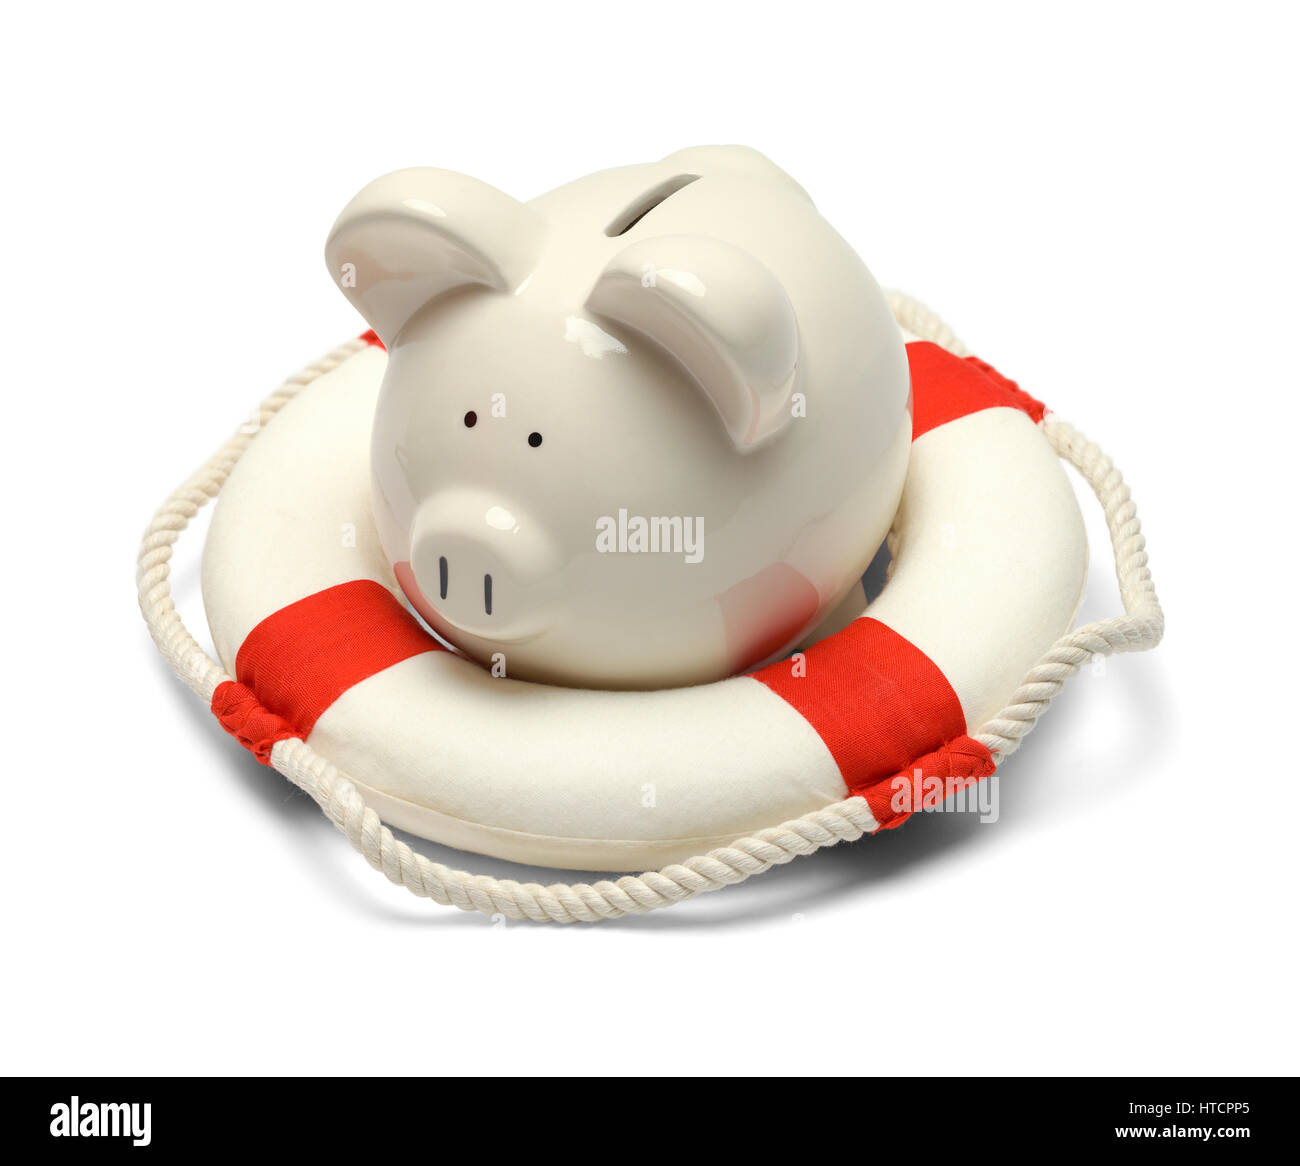 Pig in a Life Preserver Isolated on White Background. - Stock Image